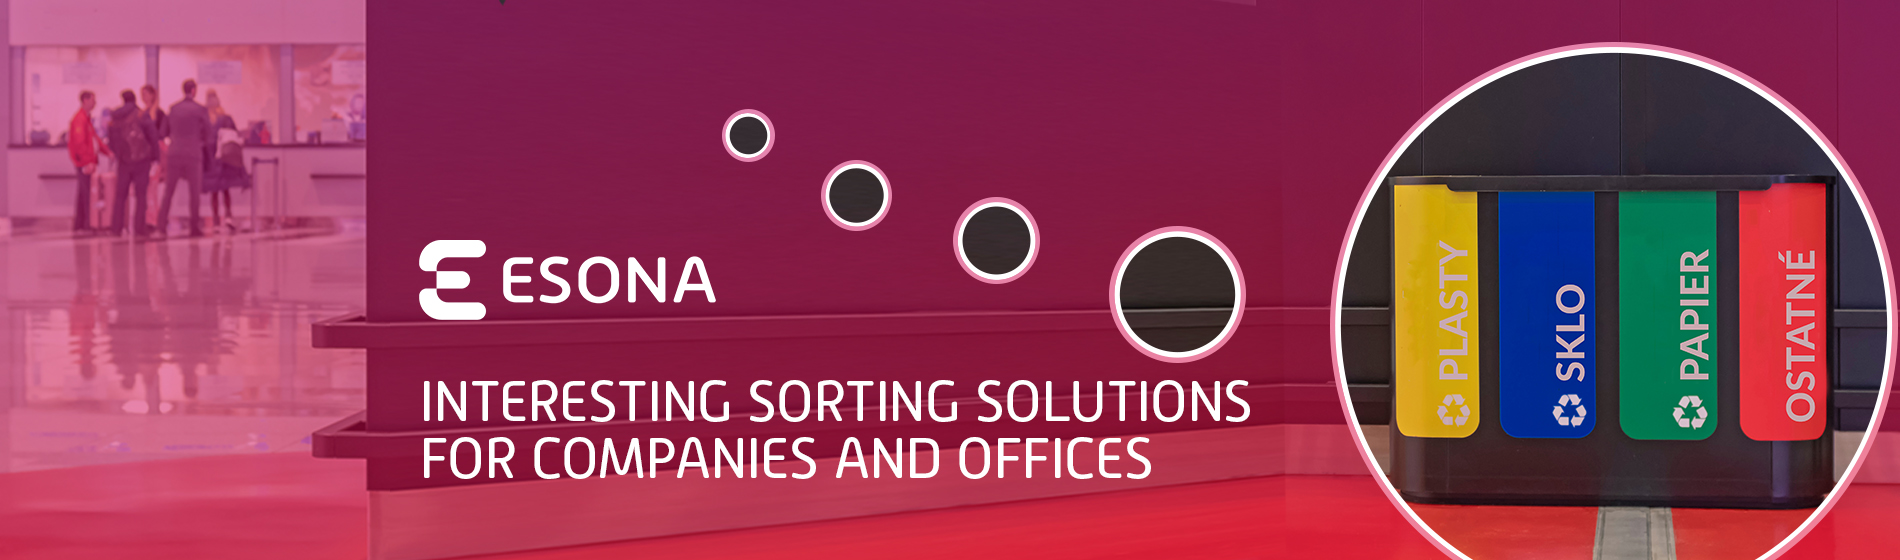 Interesting sorting solutions for companies and offices